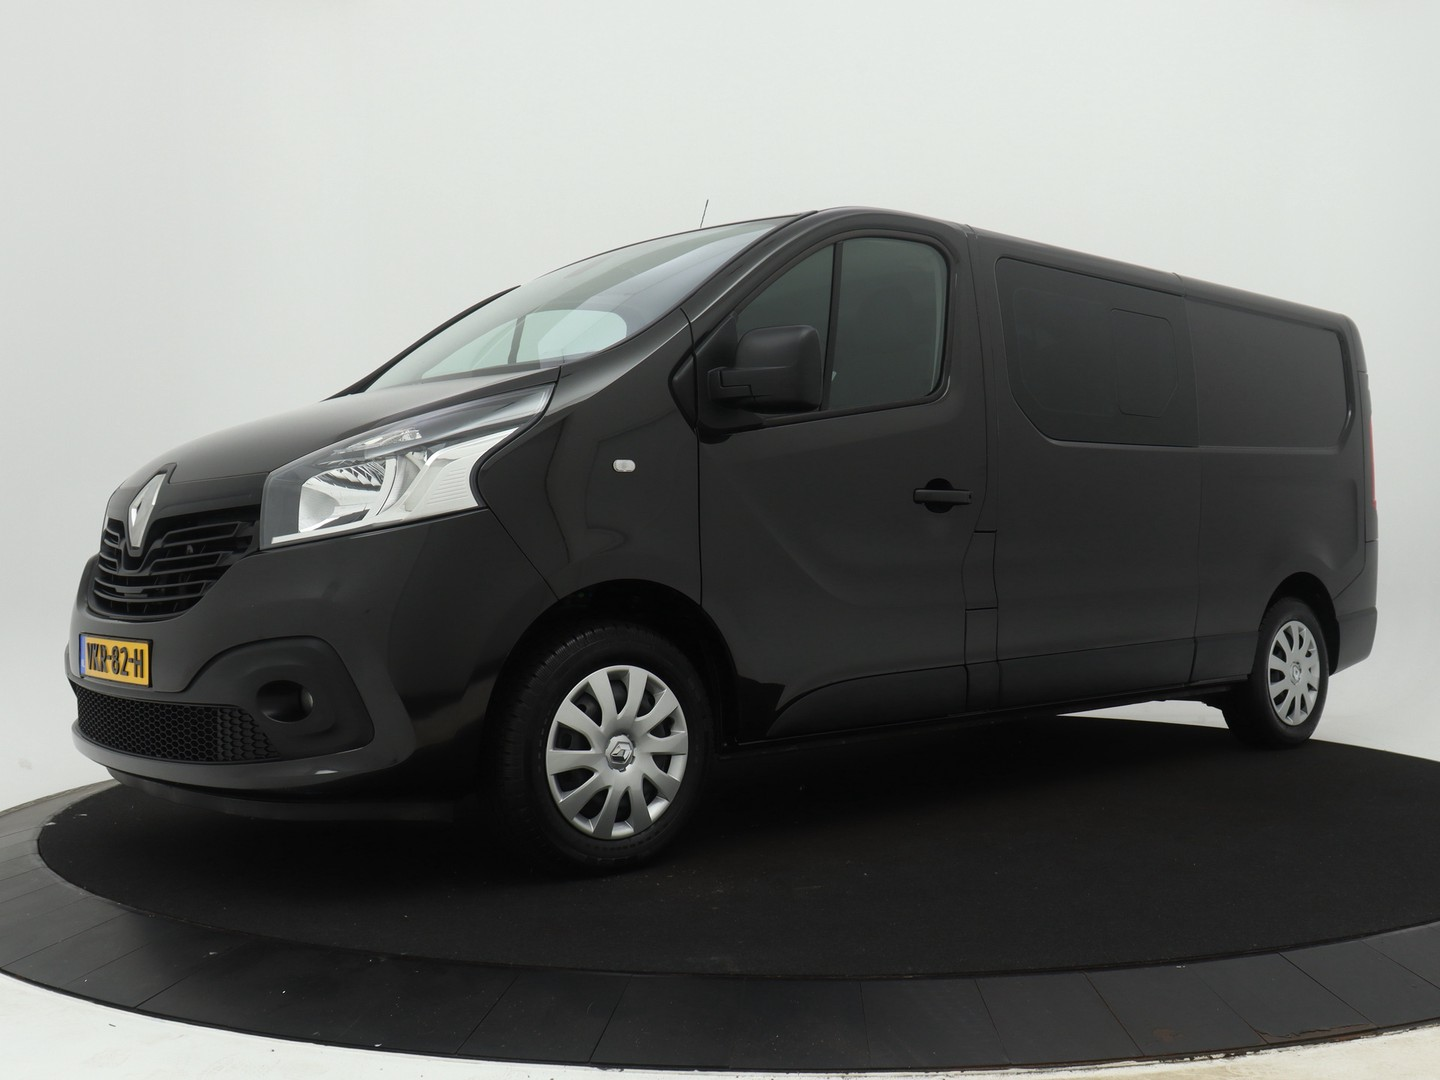 Renault Trafic 1.6 dci t29 120pk l2h1 dc work edition energy r-link navigatie i camera i airco